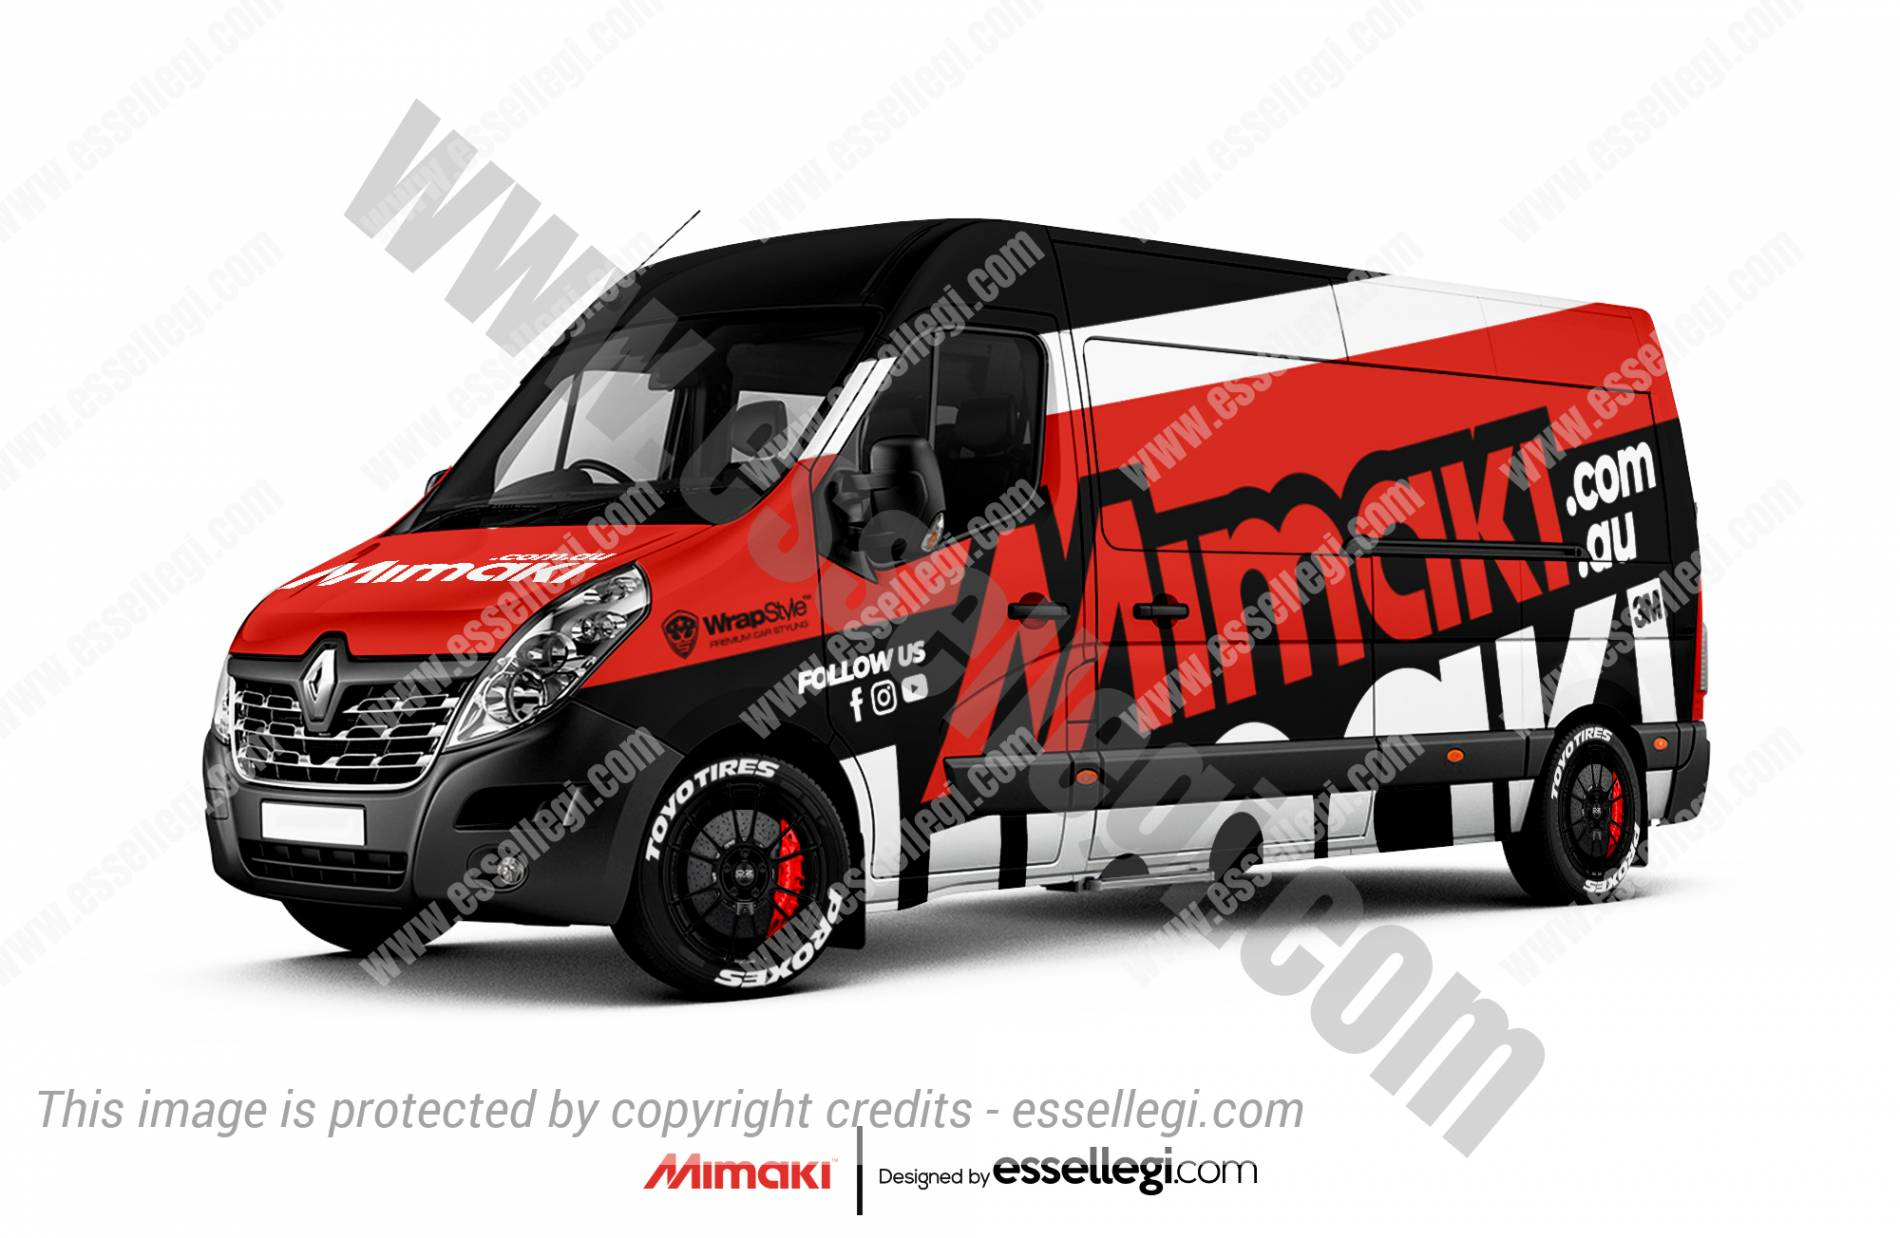 Renault Master Wrap Design. Renault Master | Van Wrap Design by Essellegi. Van Signs, Van Signage, Van Wrapping, Van Signwriting, Van Wrap Designer, Signs for Van, Van Logo, Van Graphic by Essellegi.